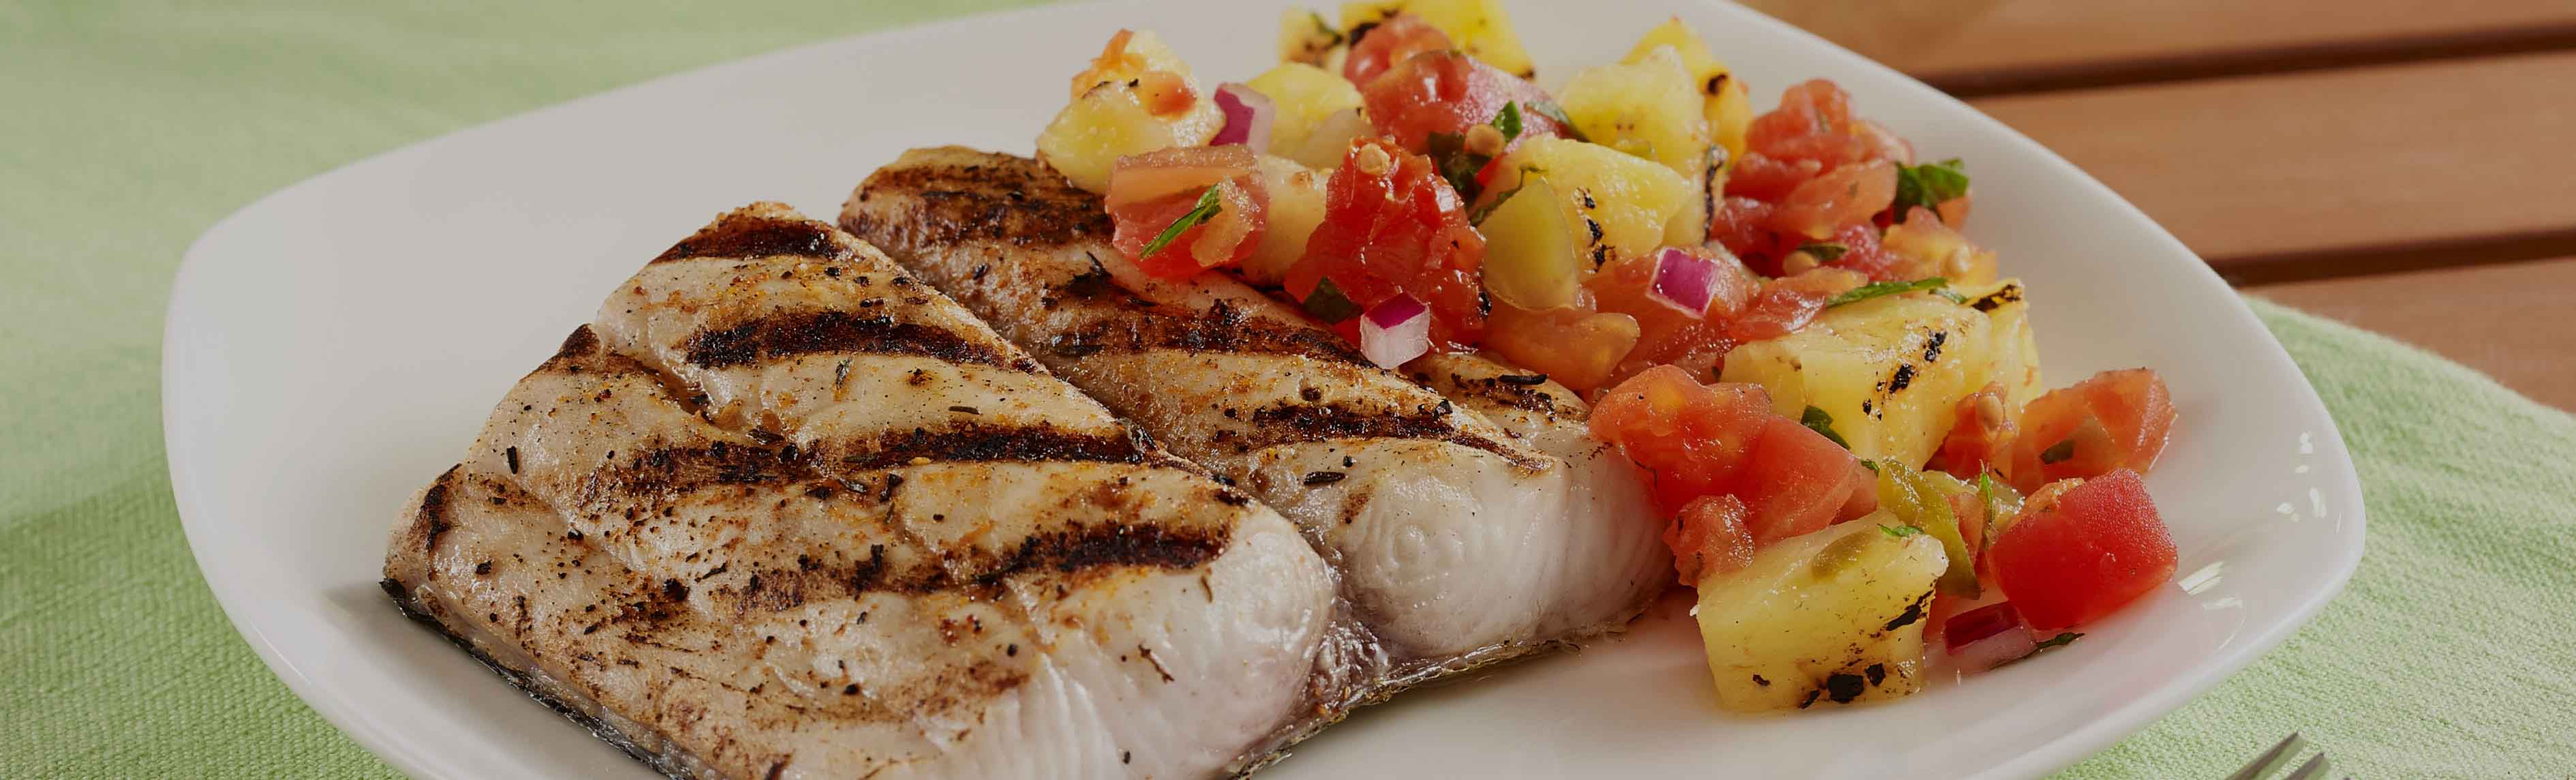 Grilled Mahi Mahi Fillets with Pineapple Salsa